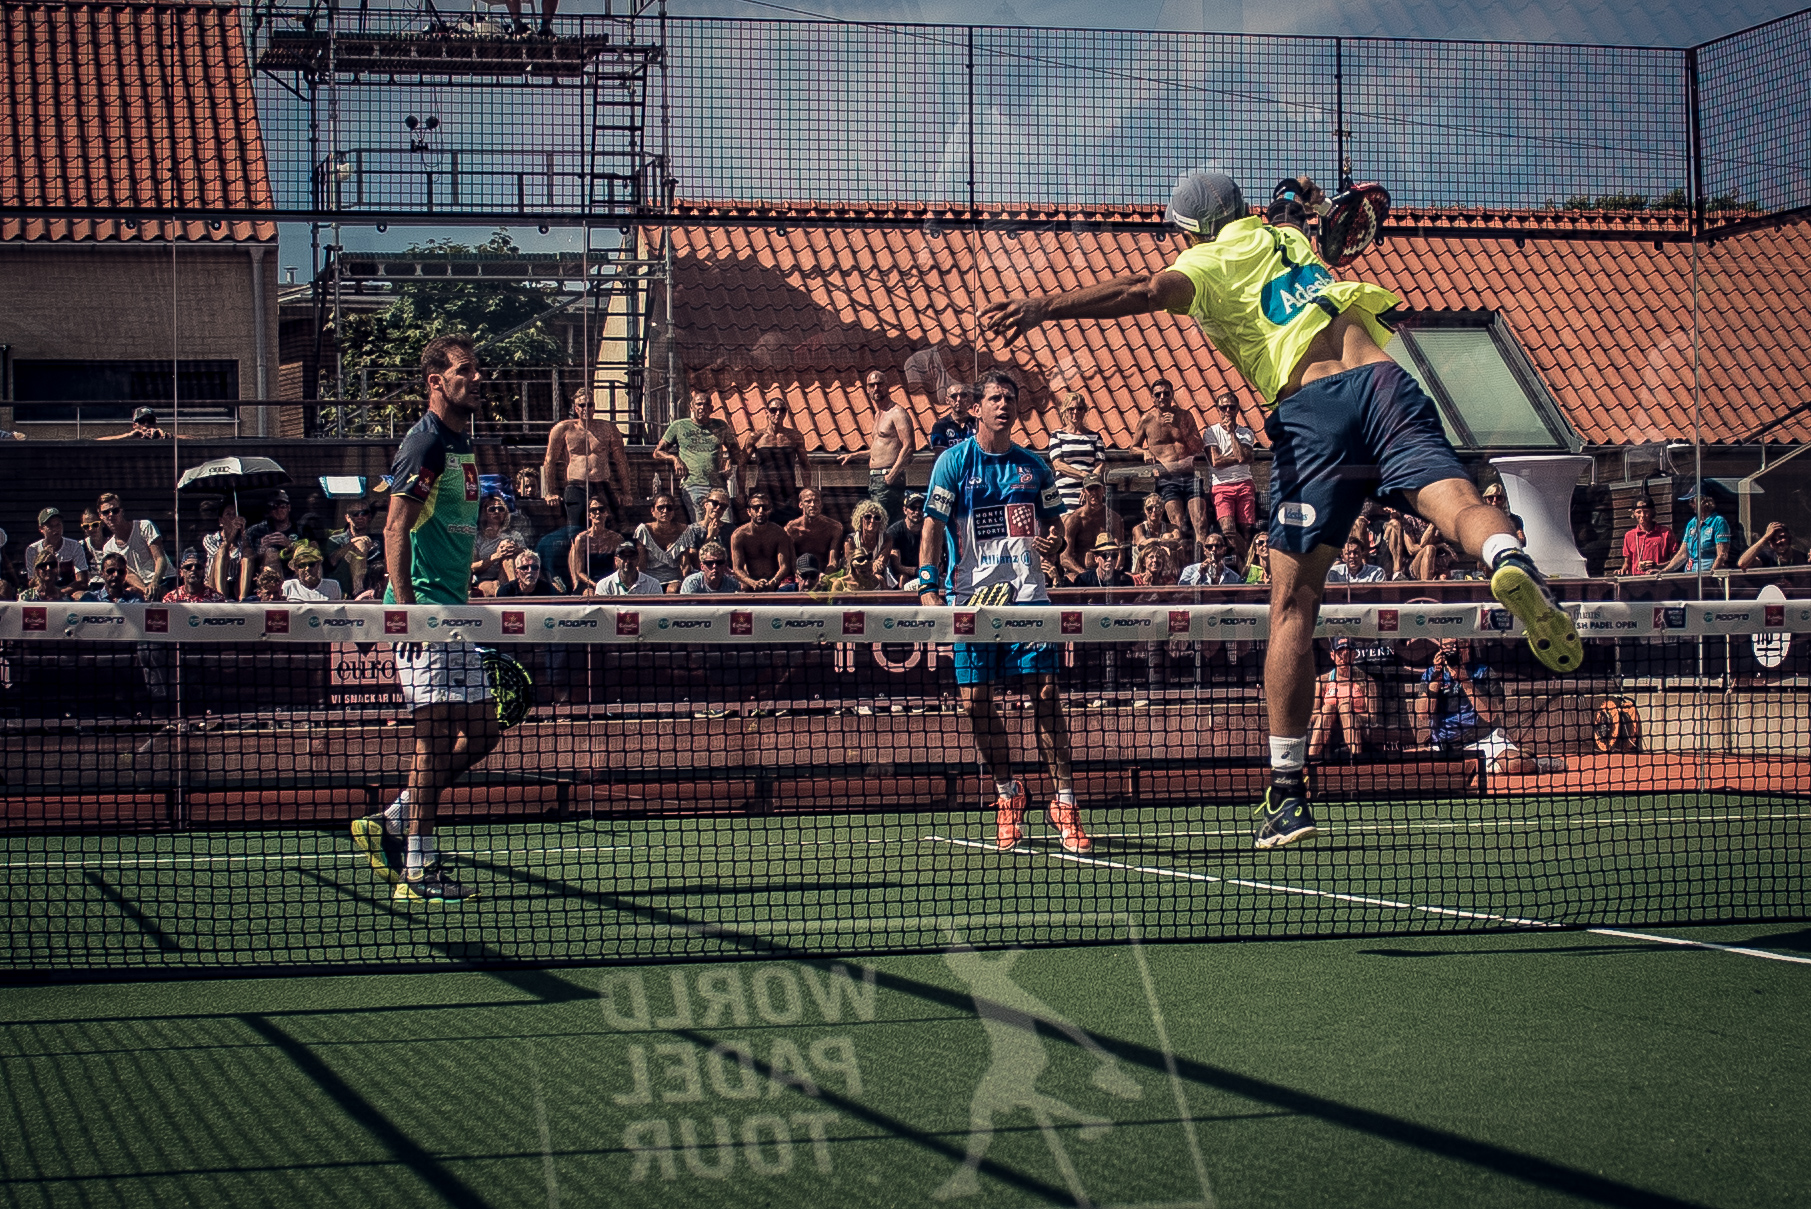 Final 5 - Final Swedish Padel Open by Johan Lilja